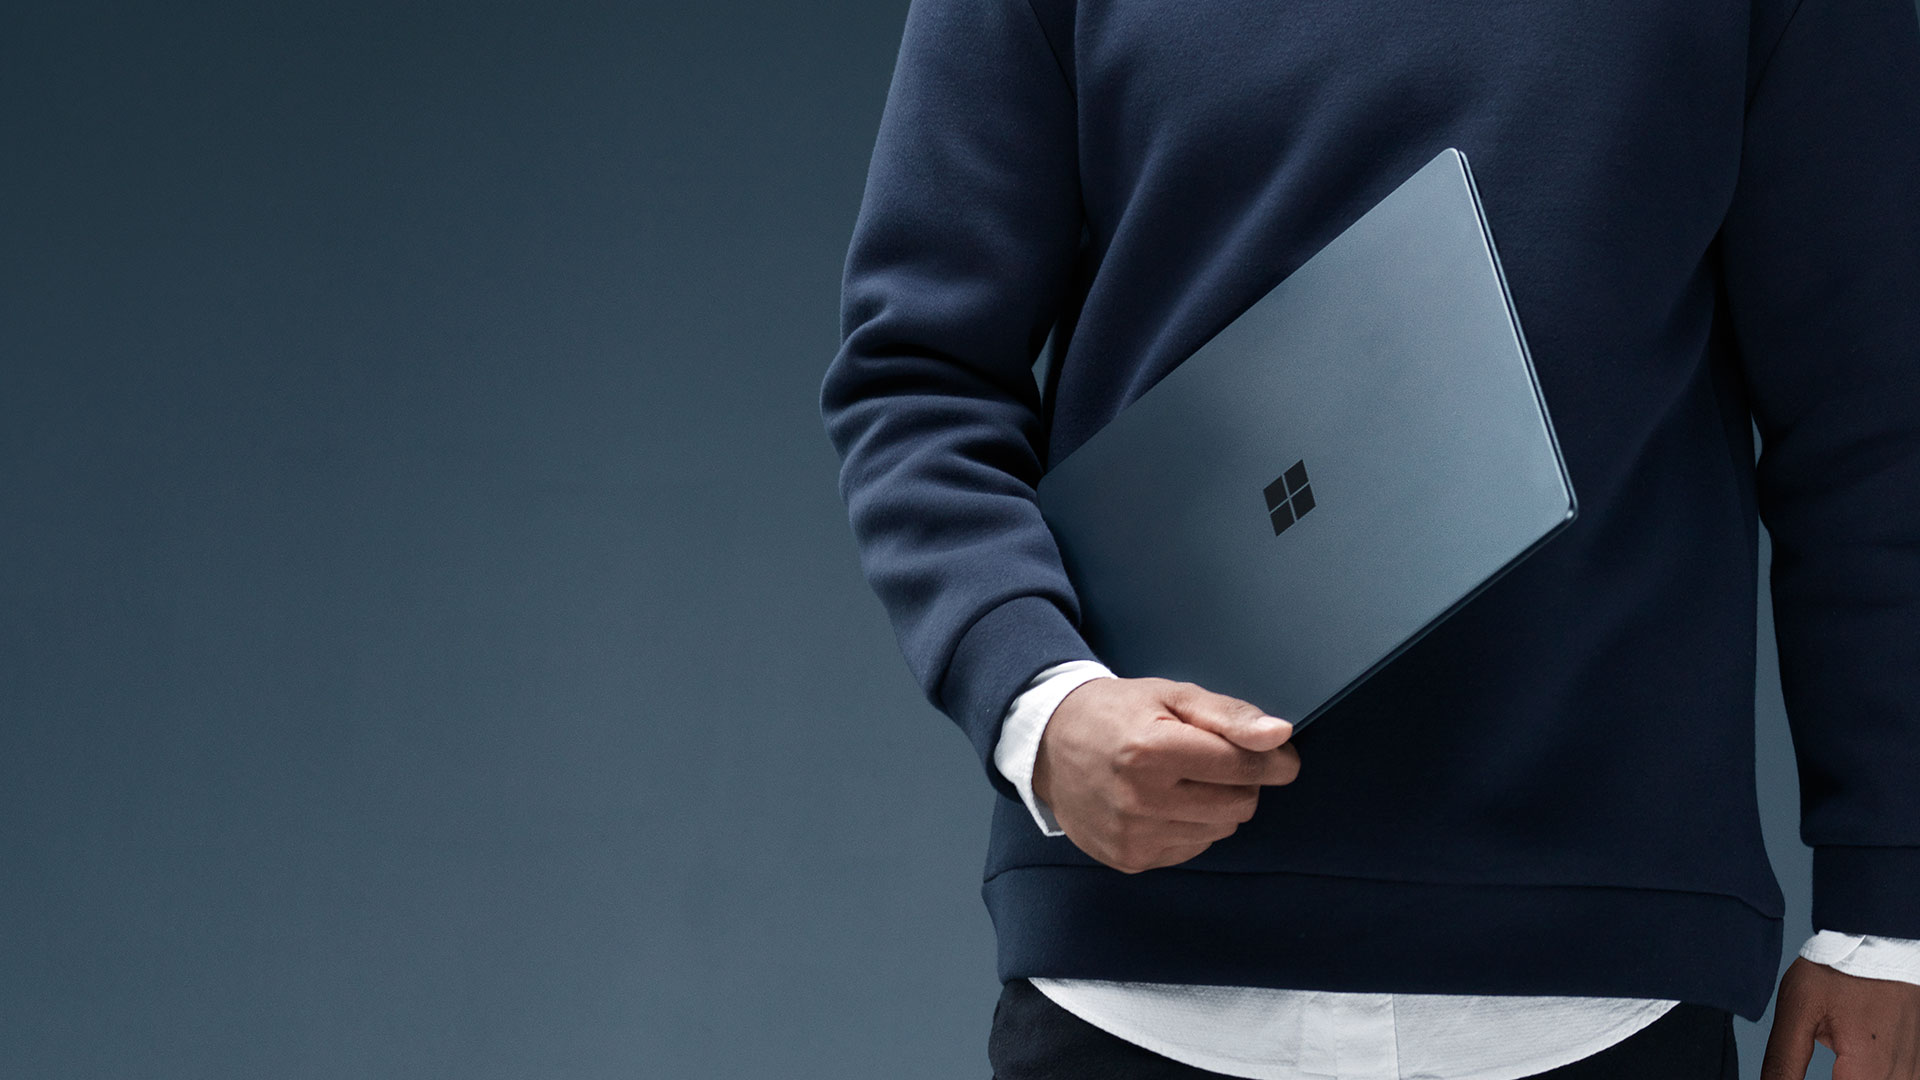 Man holding Cobalt Blue Surface Laptop